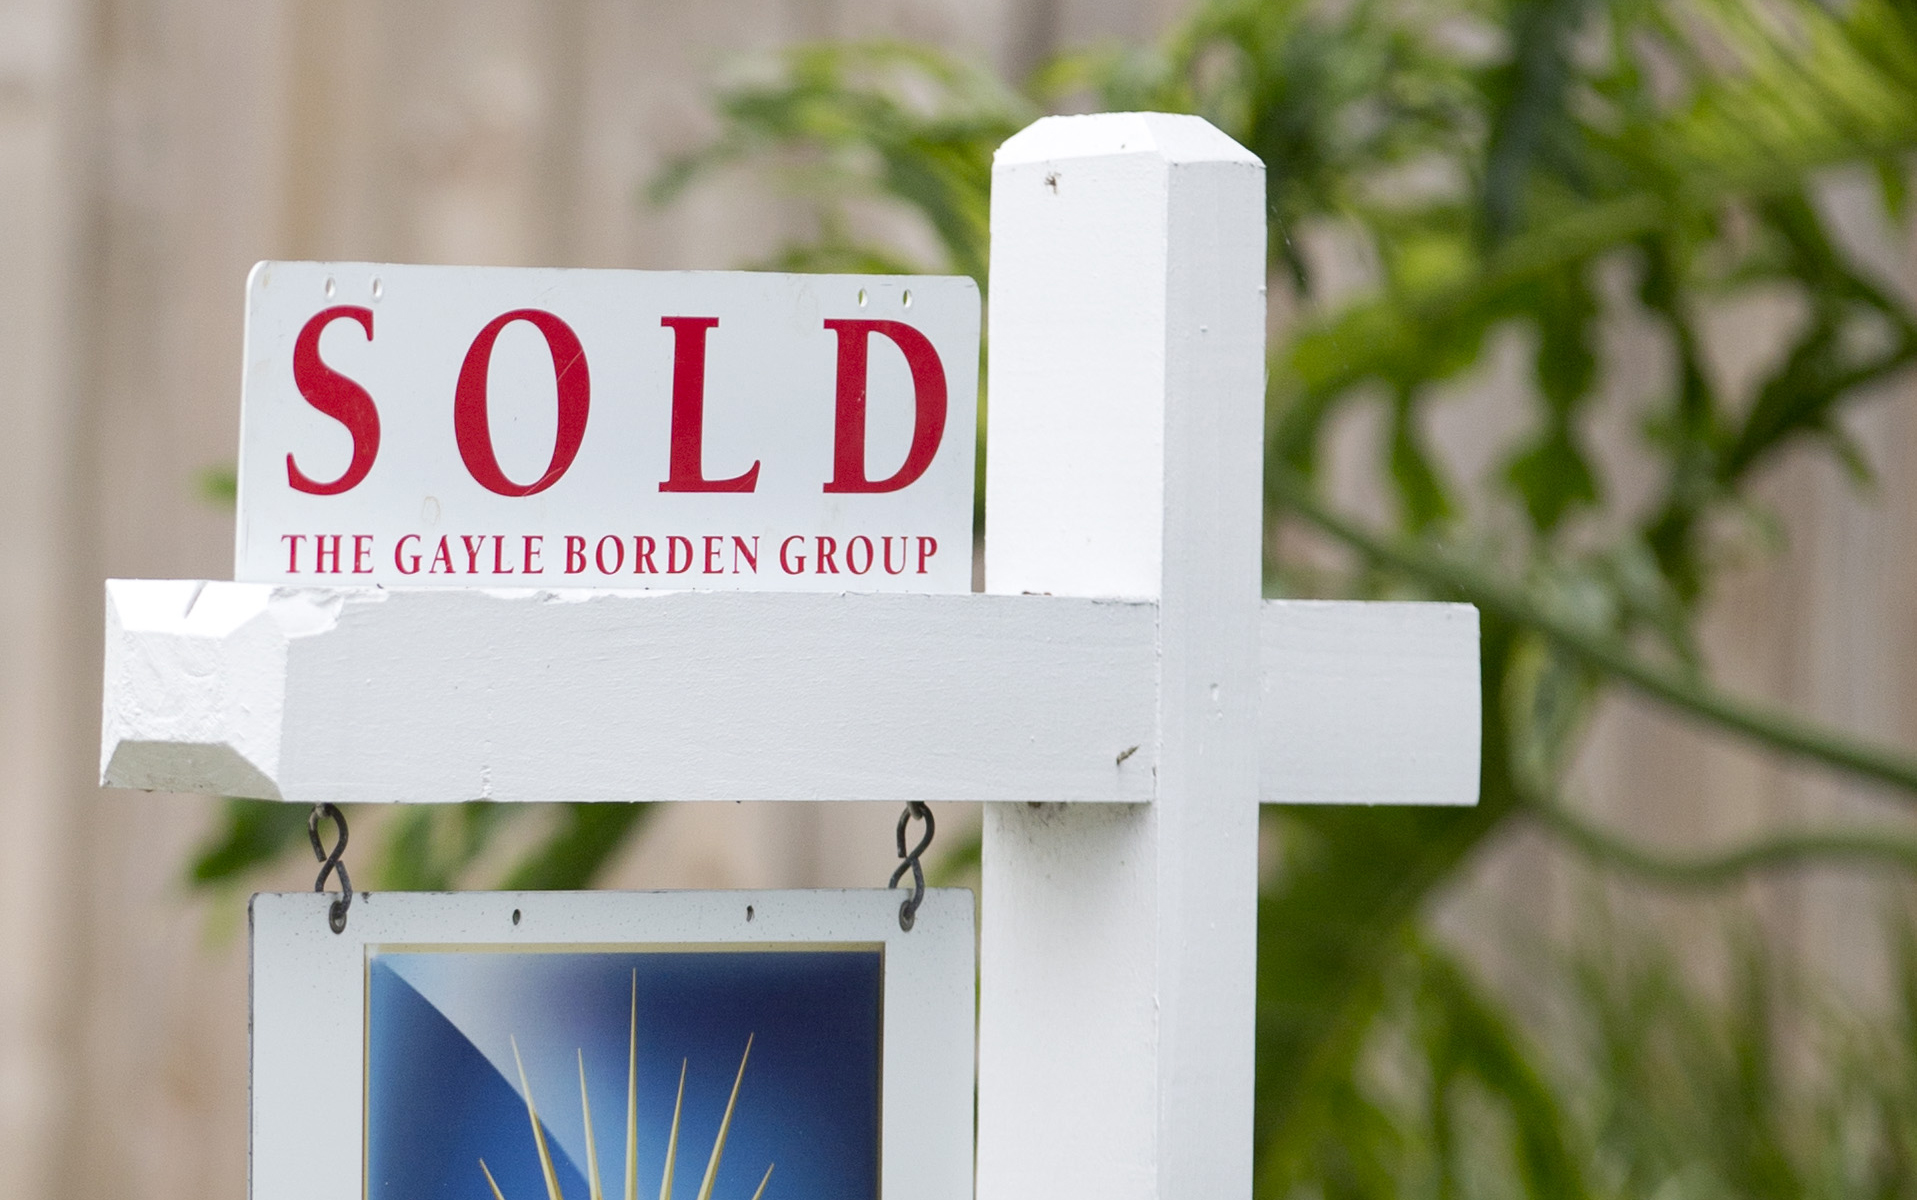 5 real estate trends to watch in 2016